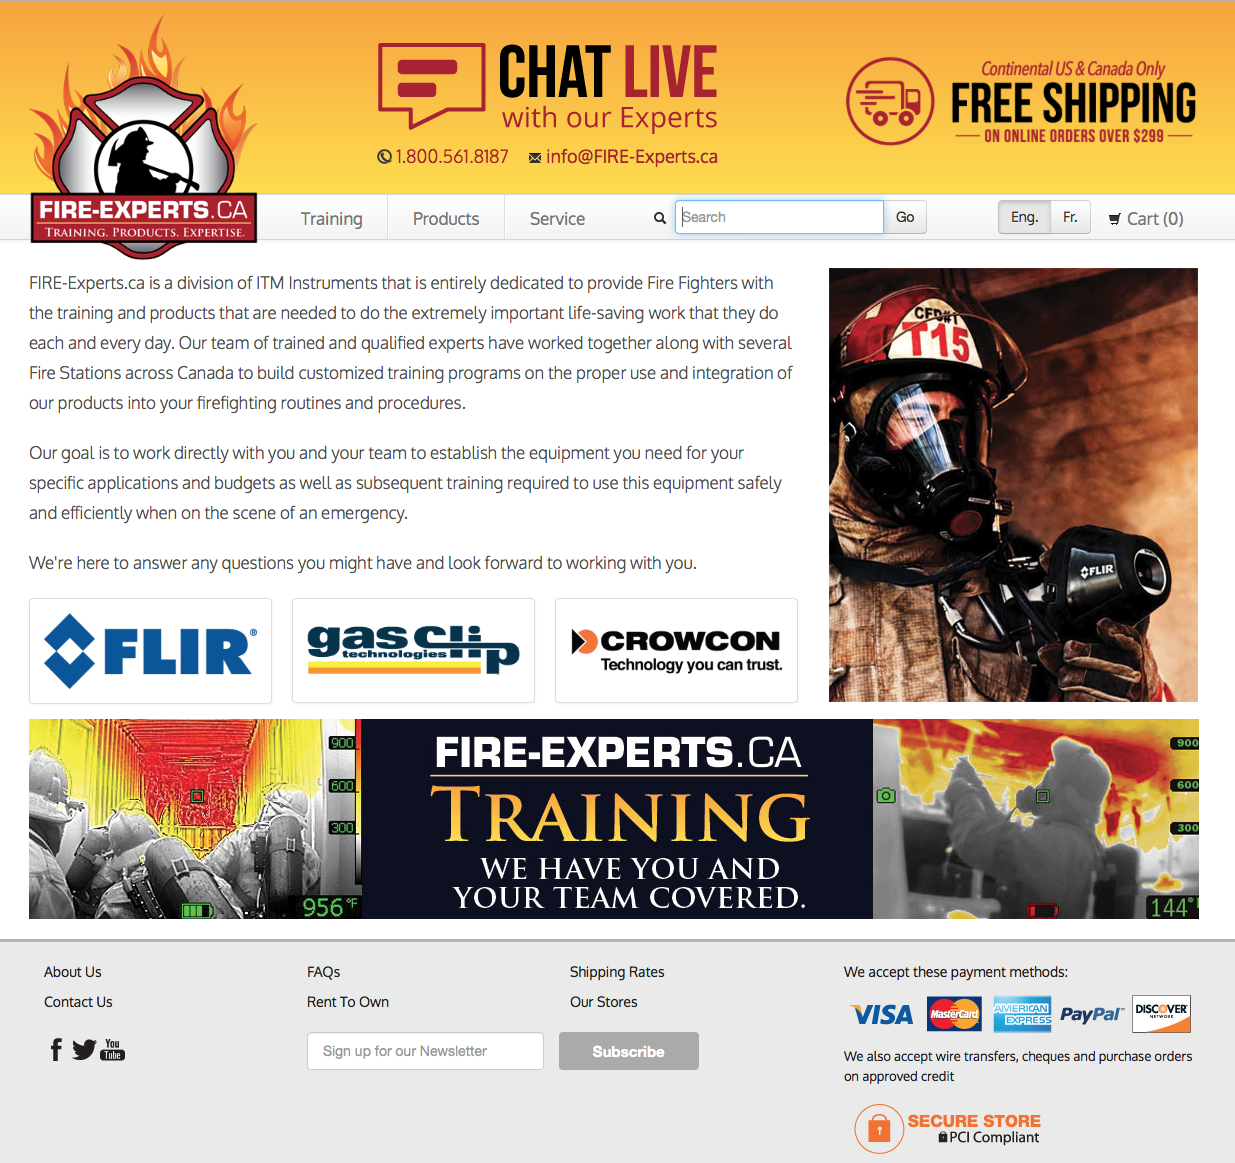 FIRE-Experts.ca - Training, Products & Expertise specifically for Fire Fighters.